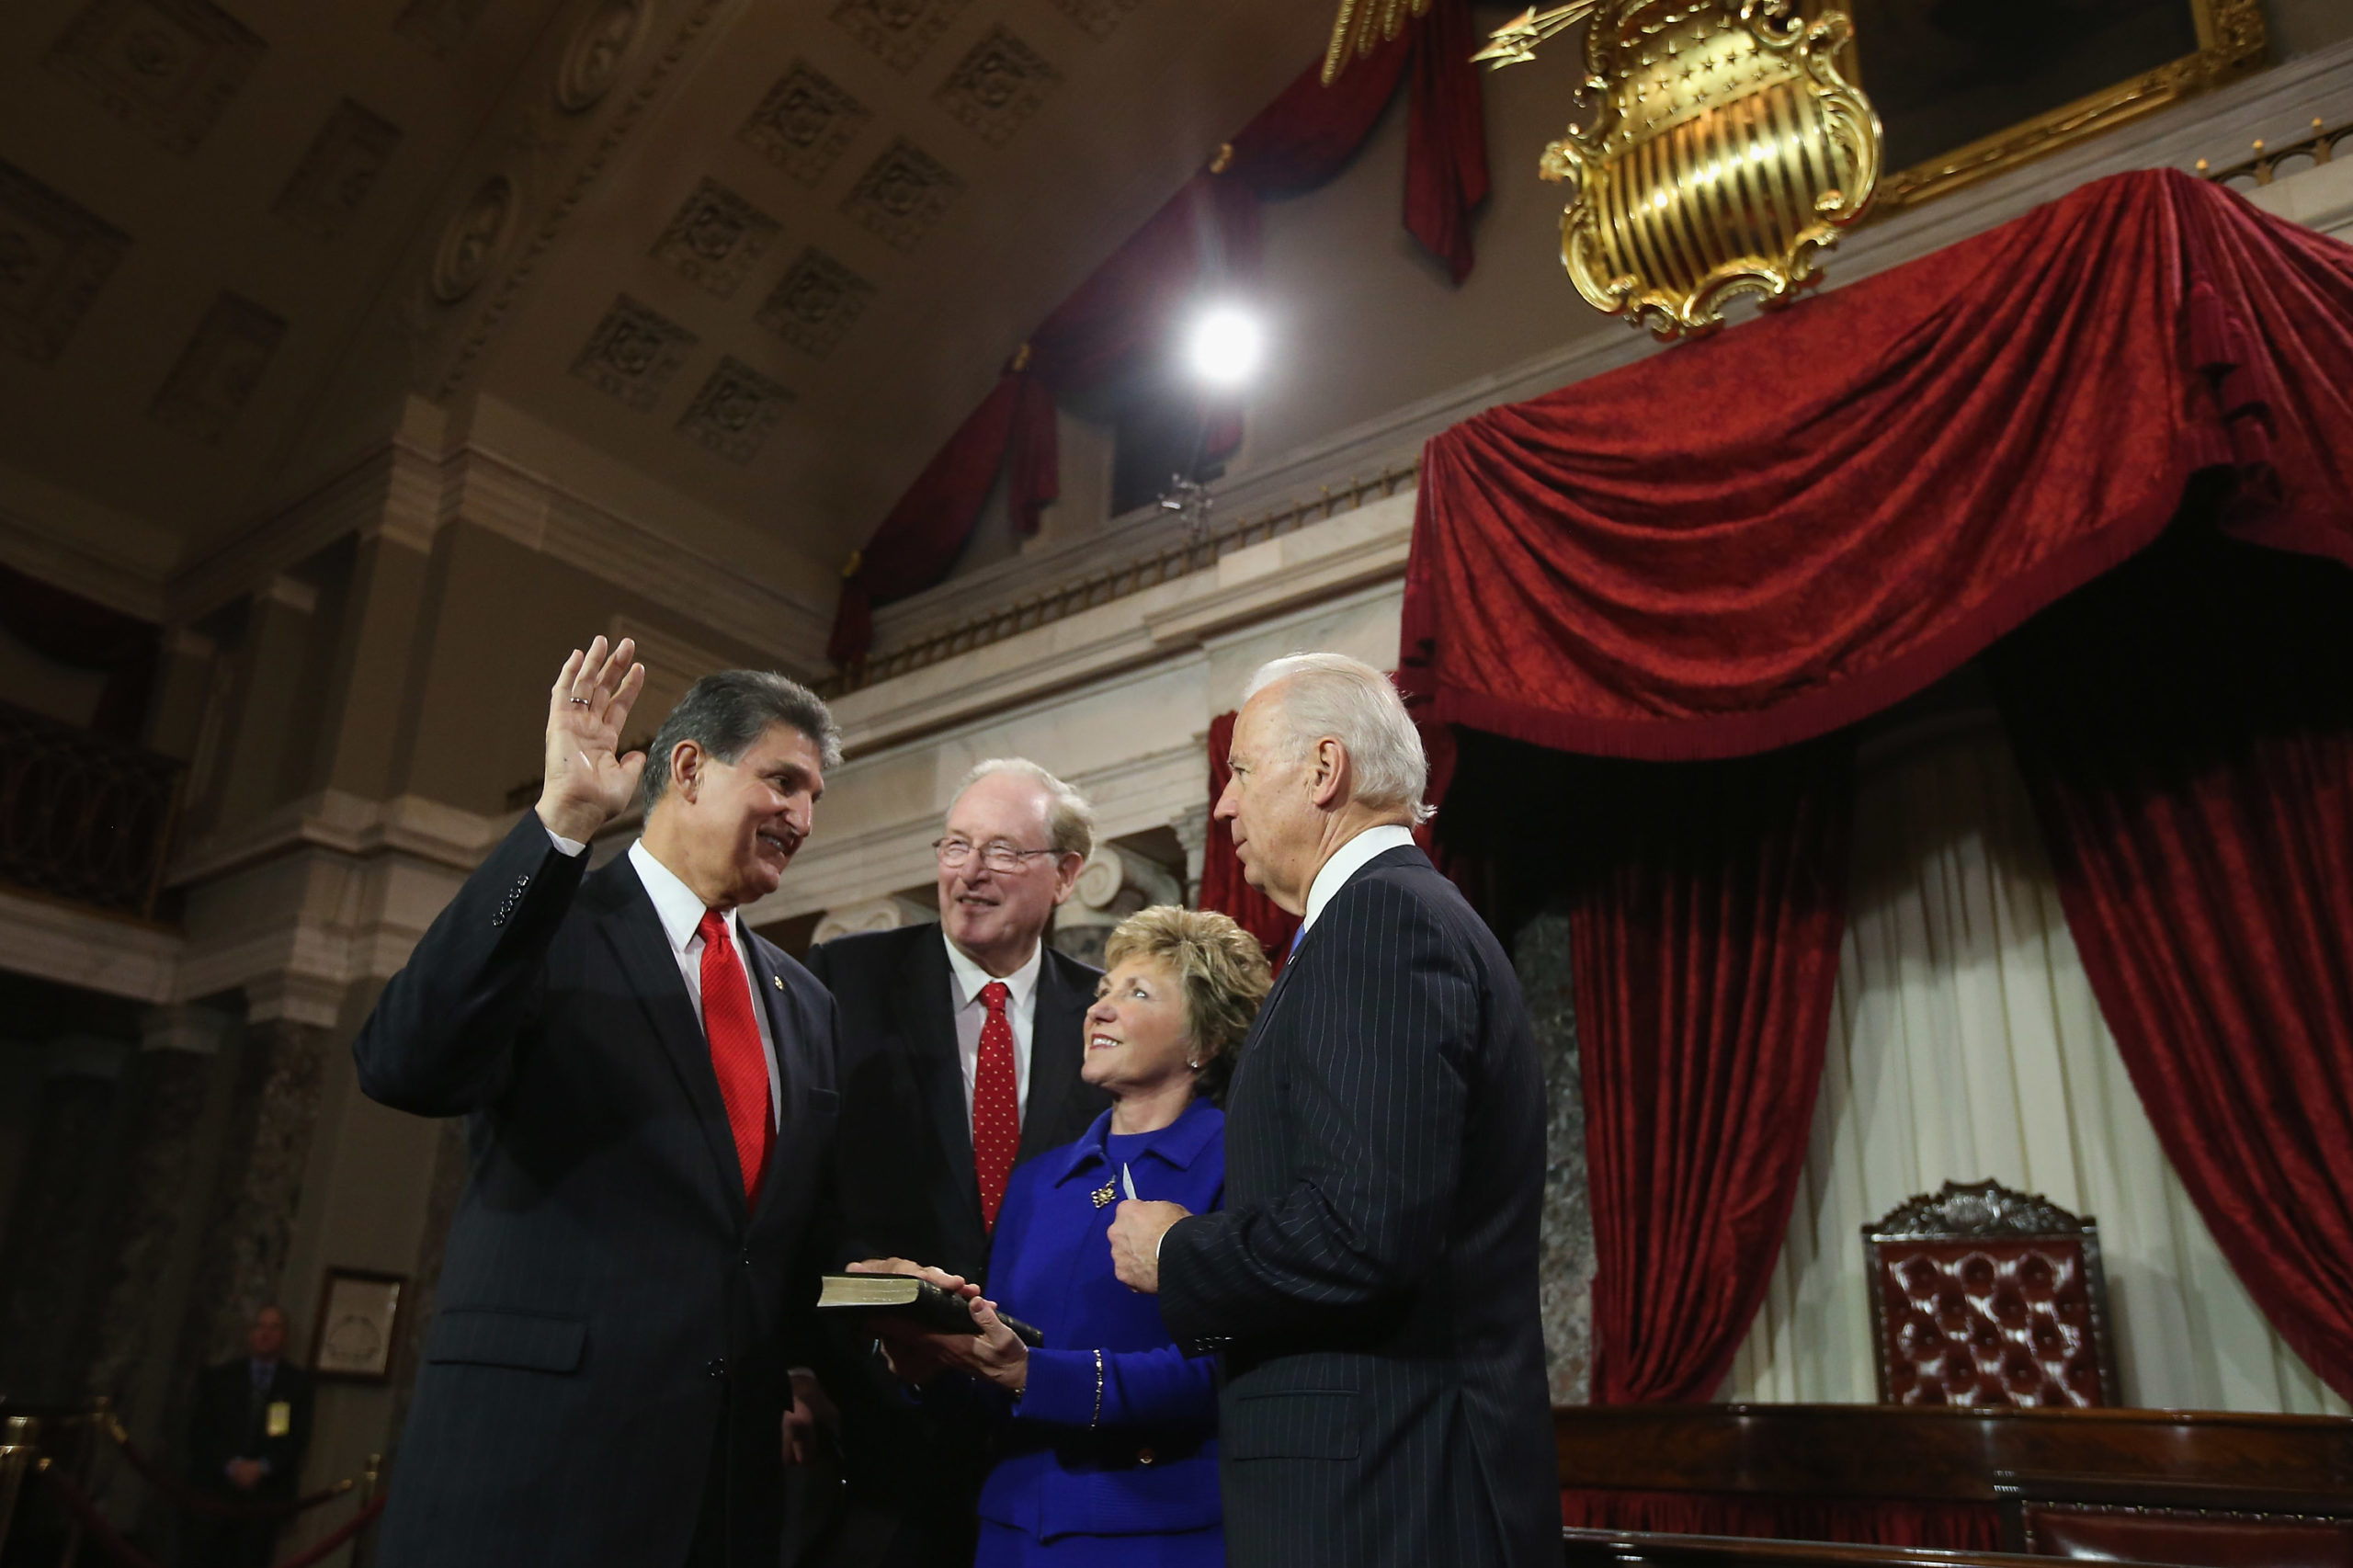 WASHINGTON, DC - JANUARY 03: U.S. Sen. Joe Manchin (D-WV) (L) participates in a reenacted swearing-in with his wife Gayle Conelly Manchin, U.S. Sen. Jay Rockefeller (D-WV) and U.S. Vice President Joe Biden in the Old Senate Chamber at the U.S. Capitol January 3, 2013 in Washington, DC. Biden swore in the newly-elected and re-elected senators earlier in the day on the floor of the current Senate chamber. (Photo by Chip Somodevilla/Getty Images)